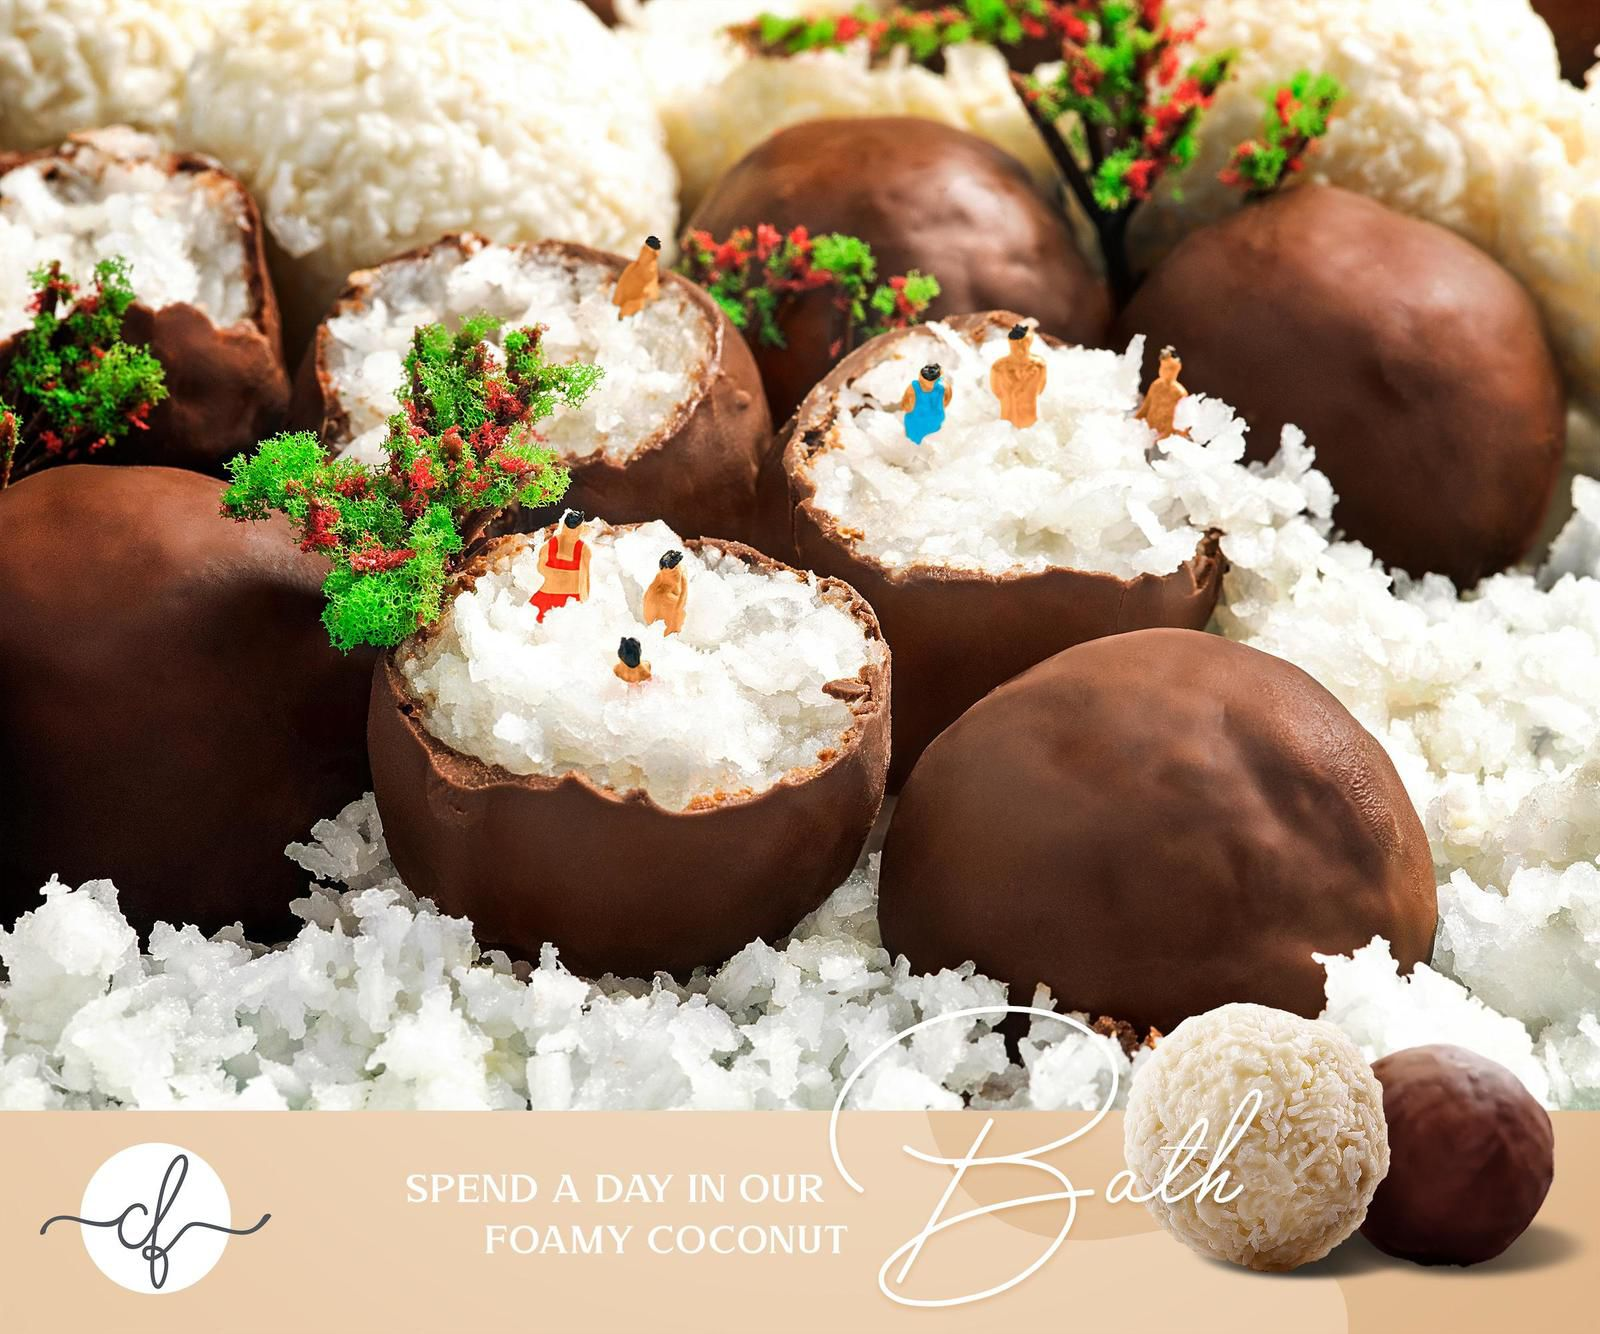 """Chocolate Factory : """"Spend a day in our foamy coconut"""" I Agence : Artbox Studios, Le Caire, Egypte (juillet 2020)"""